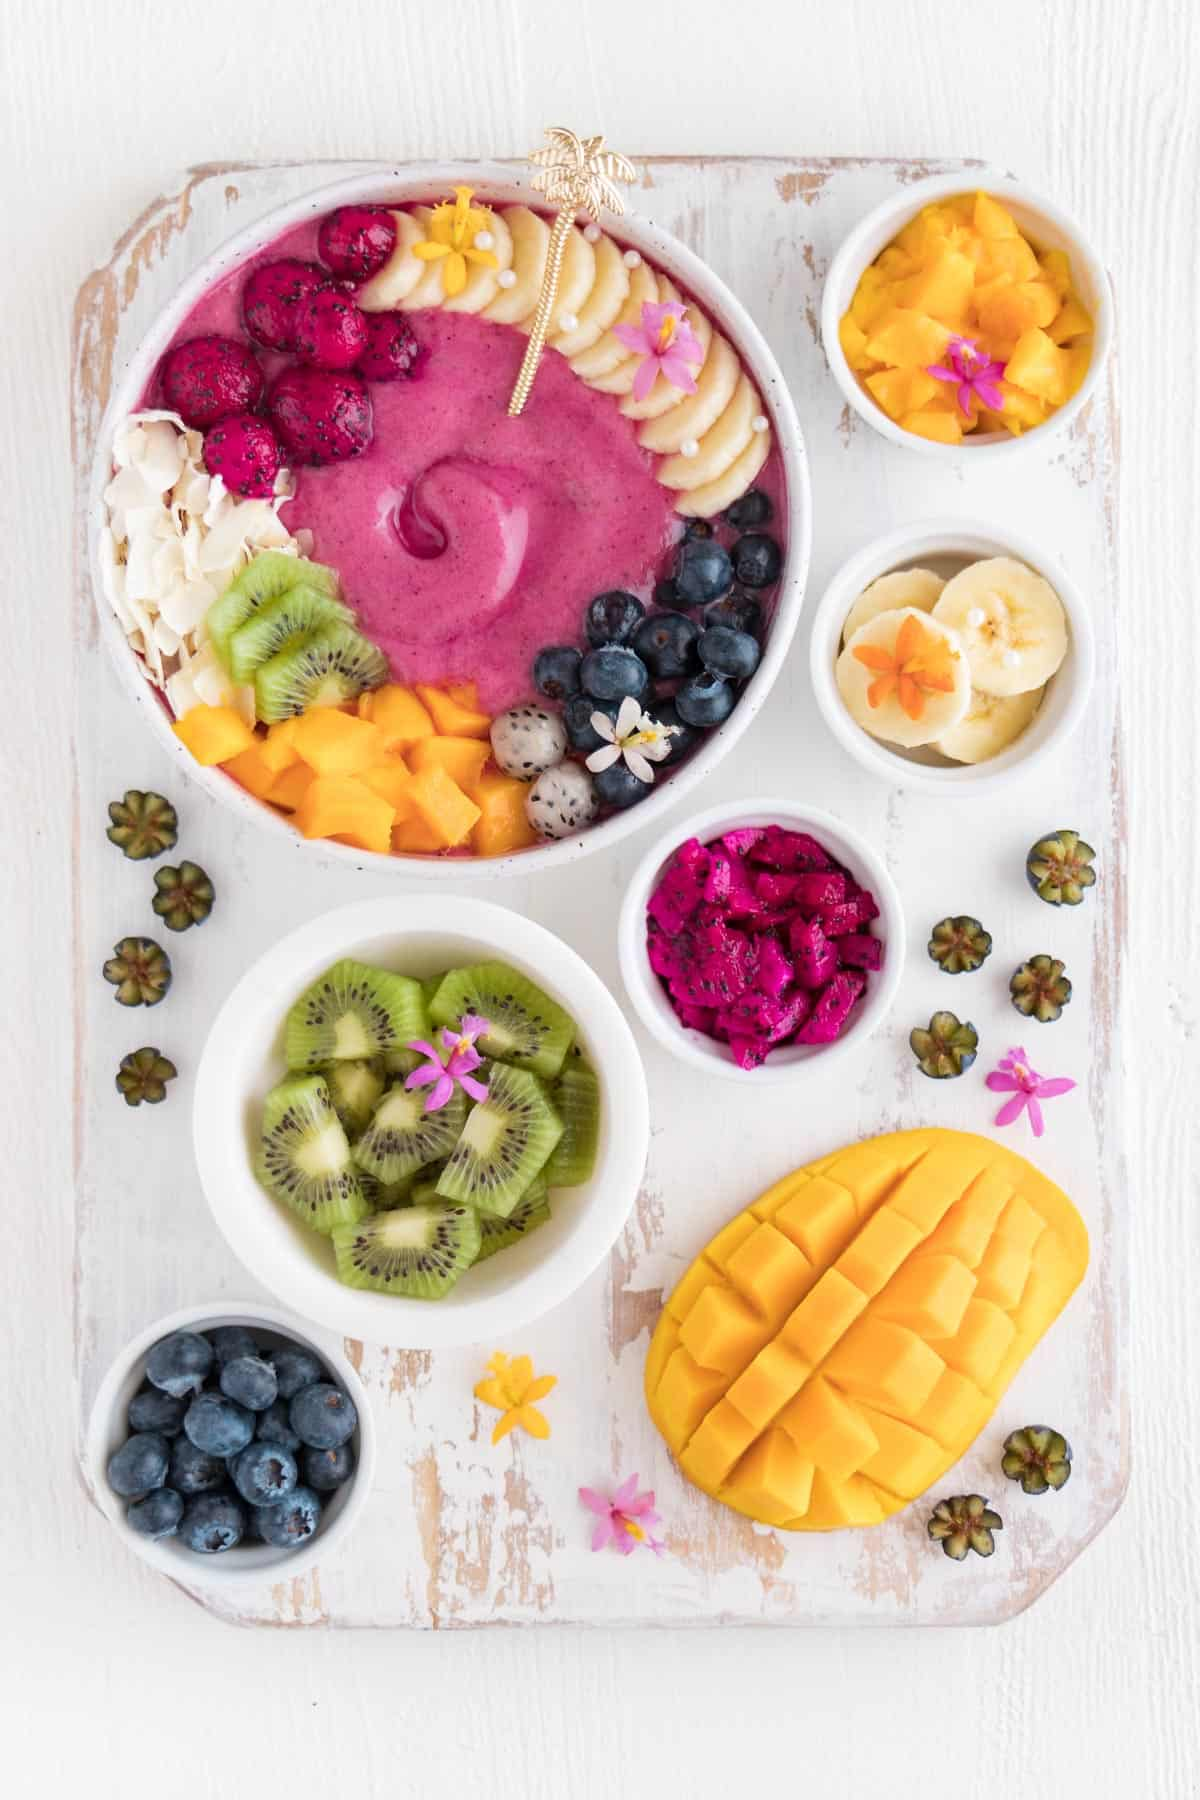 mango, kiwi, blueberries, and dragon fruit